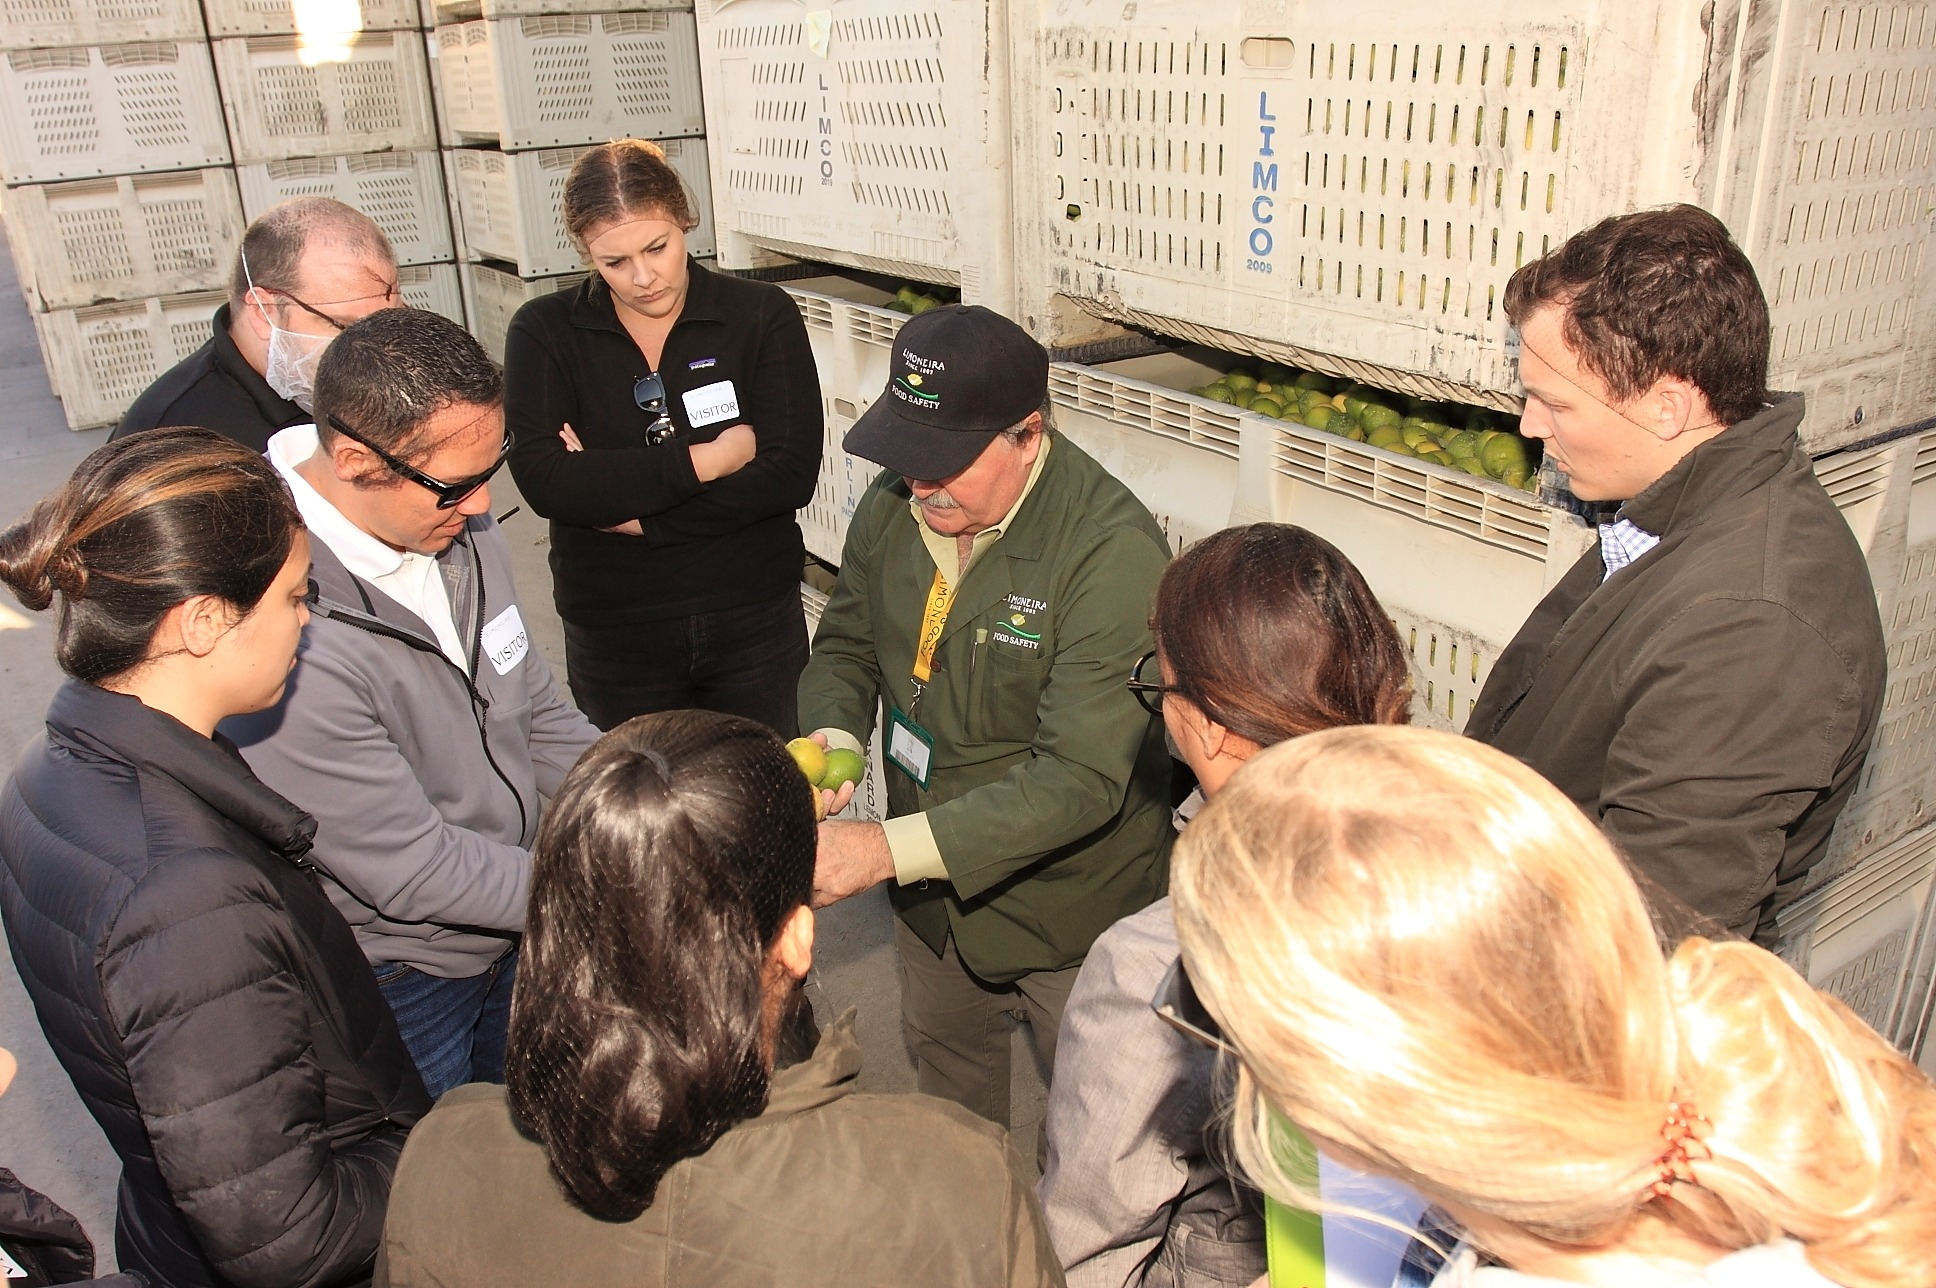 Apprentices Esmeralda Mejia, Amanda Nojadera, Jeffrey Fish, Thomas Rossi, Briana Giampaoli, Kevin Trisko, and Lizbeth Reyes learning about picking the perfect lemon from Tomas Gonzalez, Director of Global Food Safety & Compliance